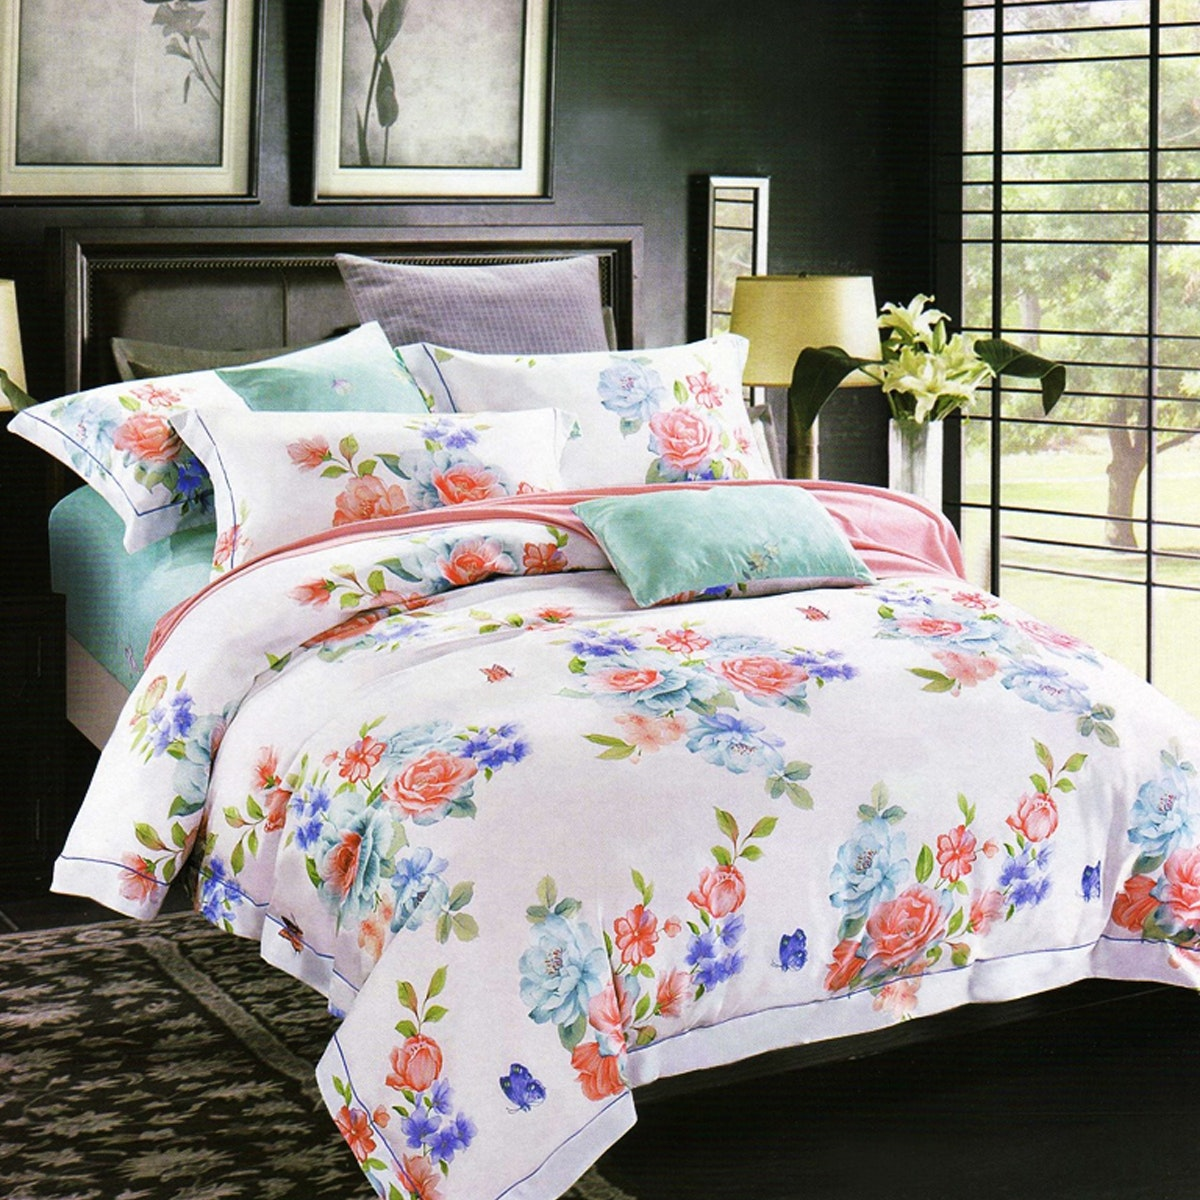 Sleep Buddy Set Sprei White Floral Cotton Sateen 160x200x30